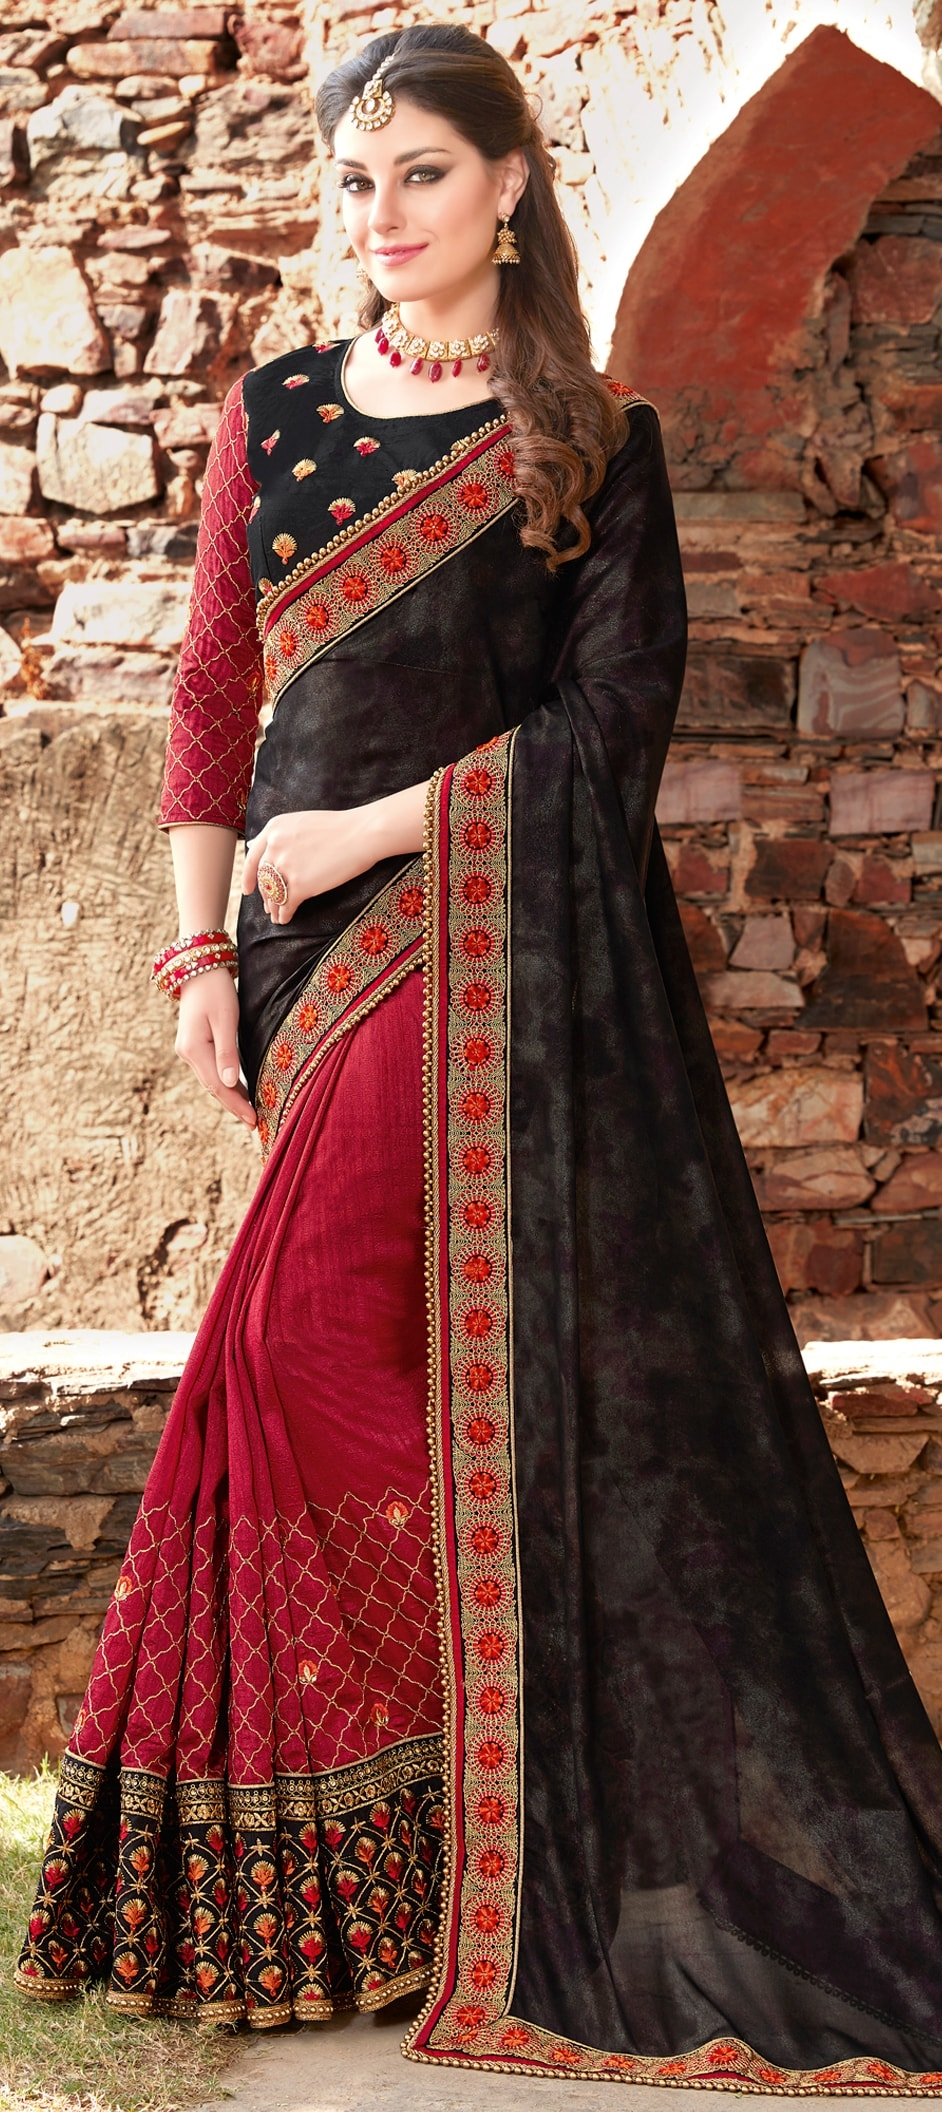 774172: Black and Grey, Red and Maroon color family Embroidered ...